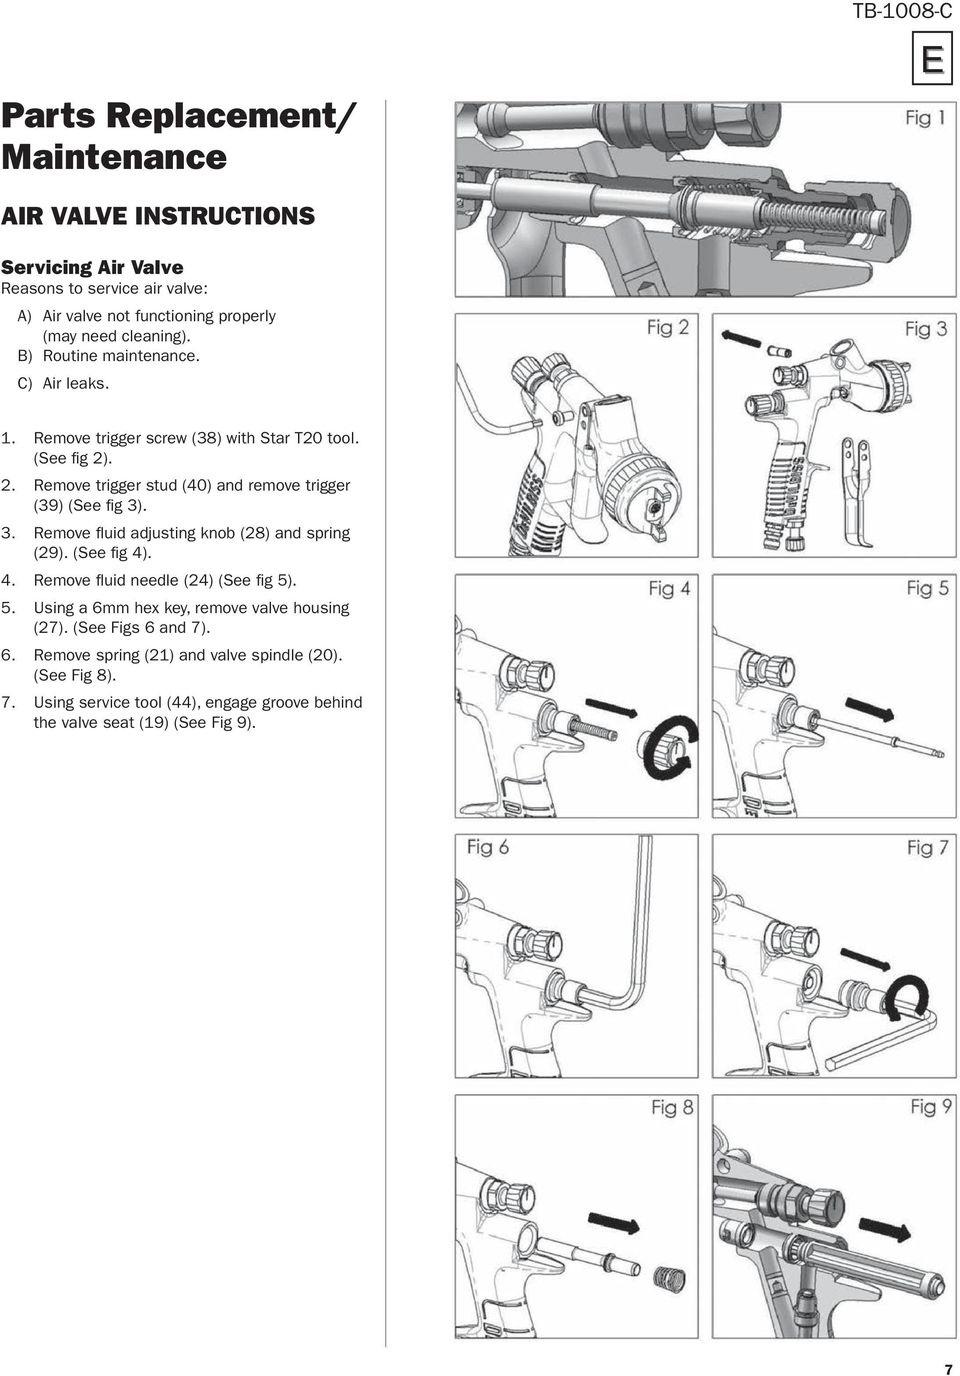 3. Remove fluid adjusting knob (28) and spring (29). (See fig 4). 4. Remove fluid needle (24) (See fig 5). 5. Using a 6mm hex key, remove valve housing (27).